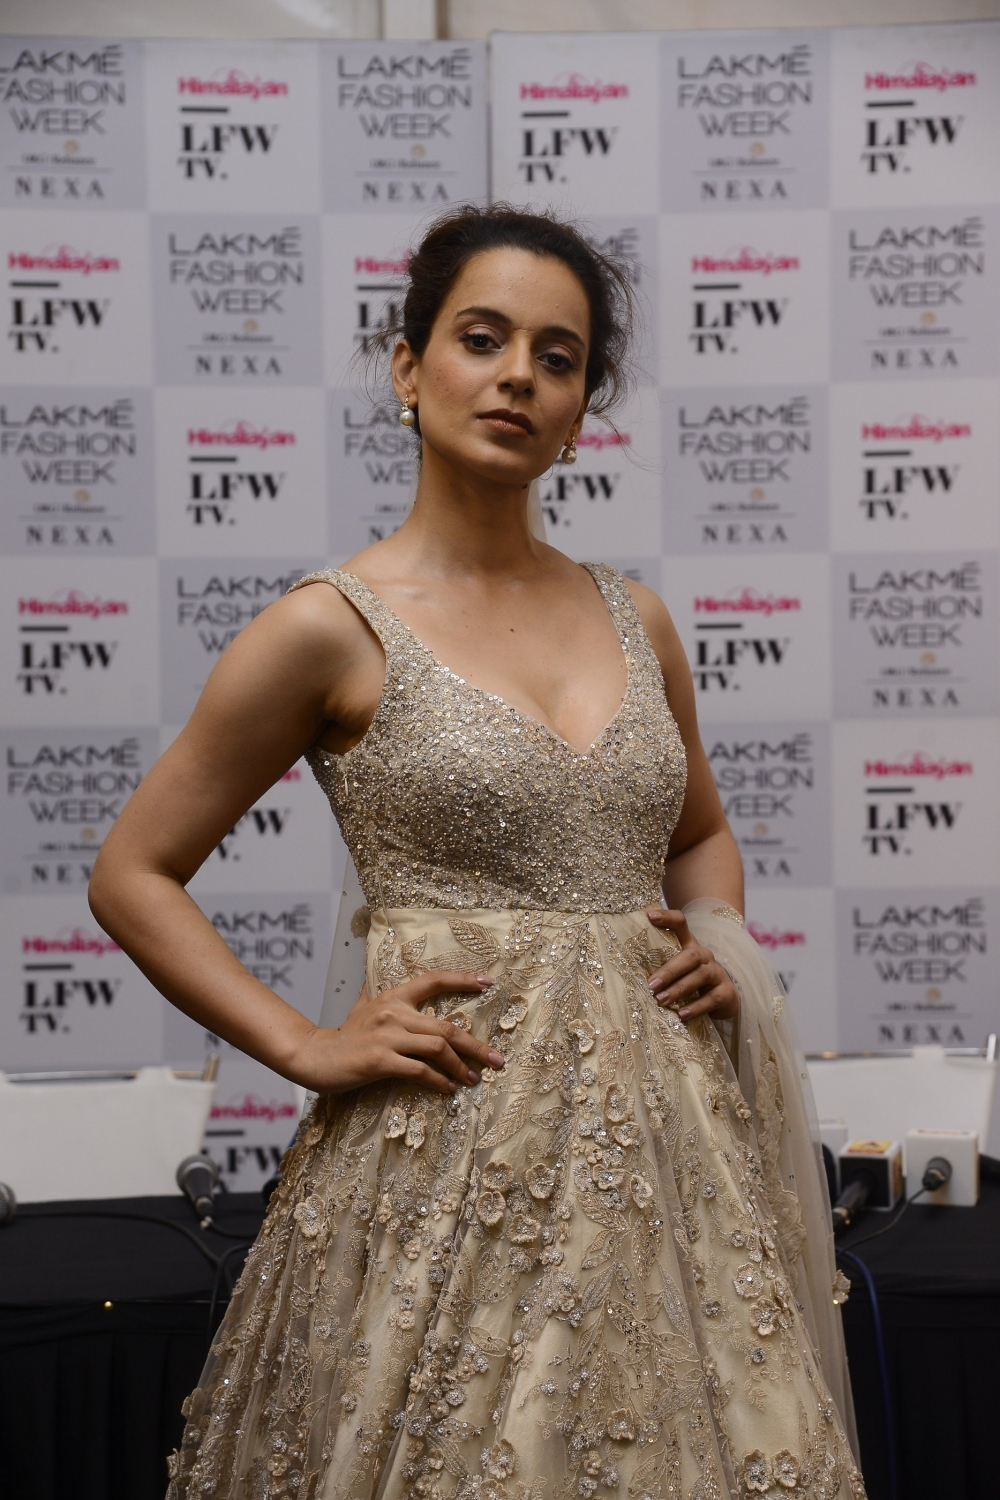 Mumbai: Actress Kangana Ranaut during the Lakme Fashion Week Summer/Resort 2018 in Mumbai on Feb 4, 2018. (Photo: IANS)